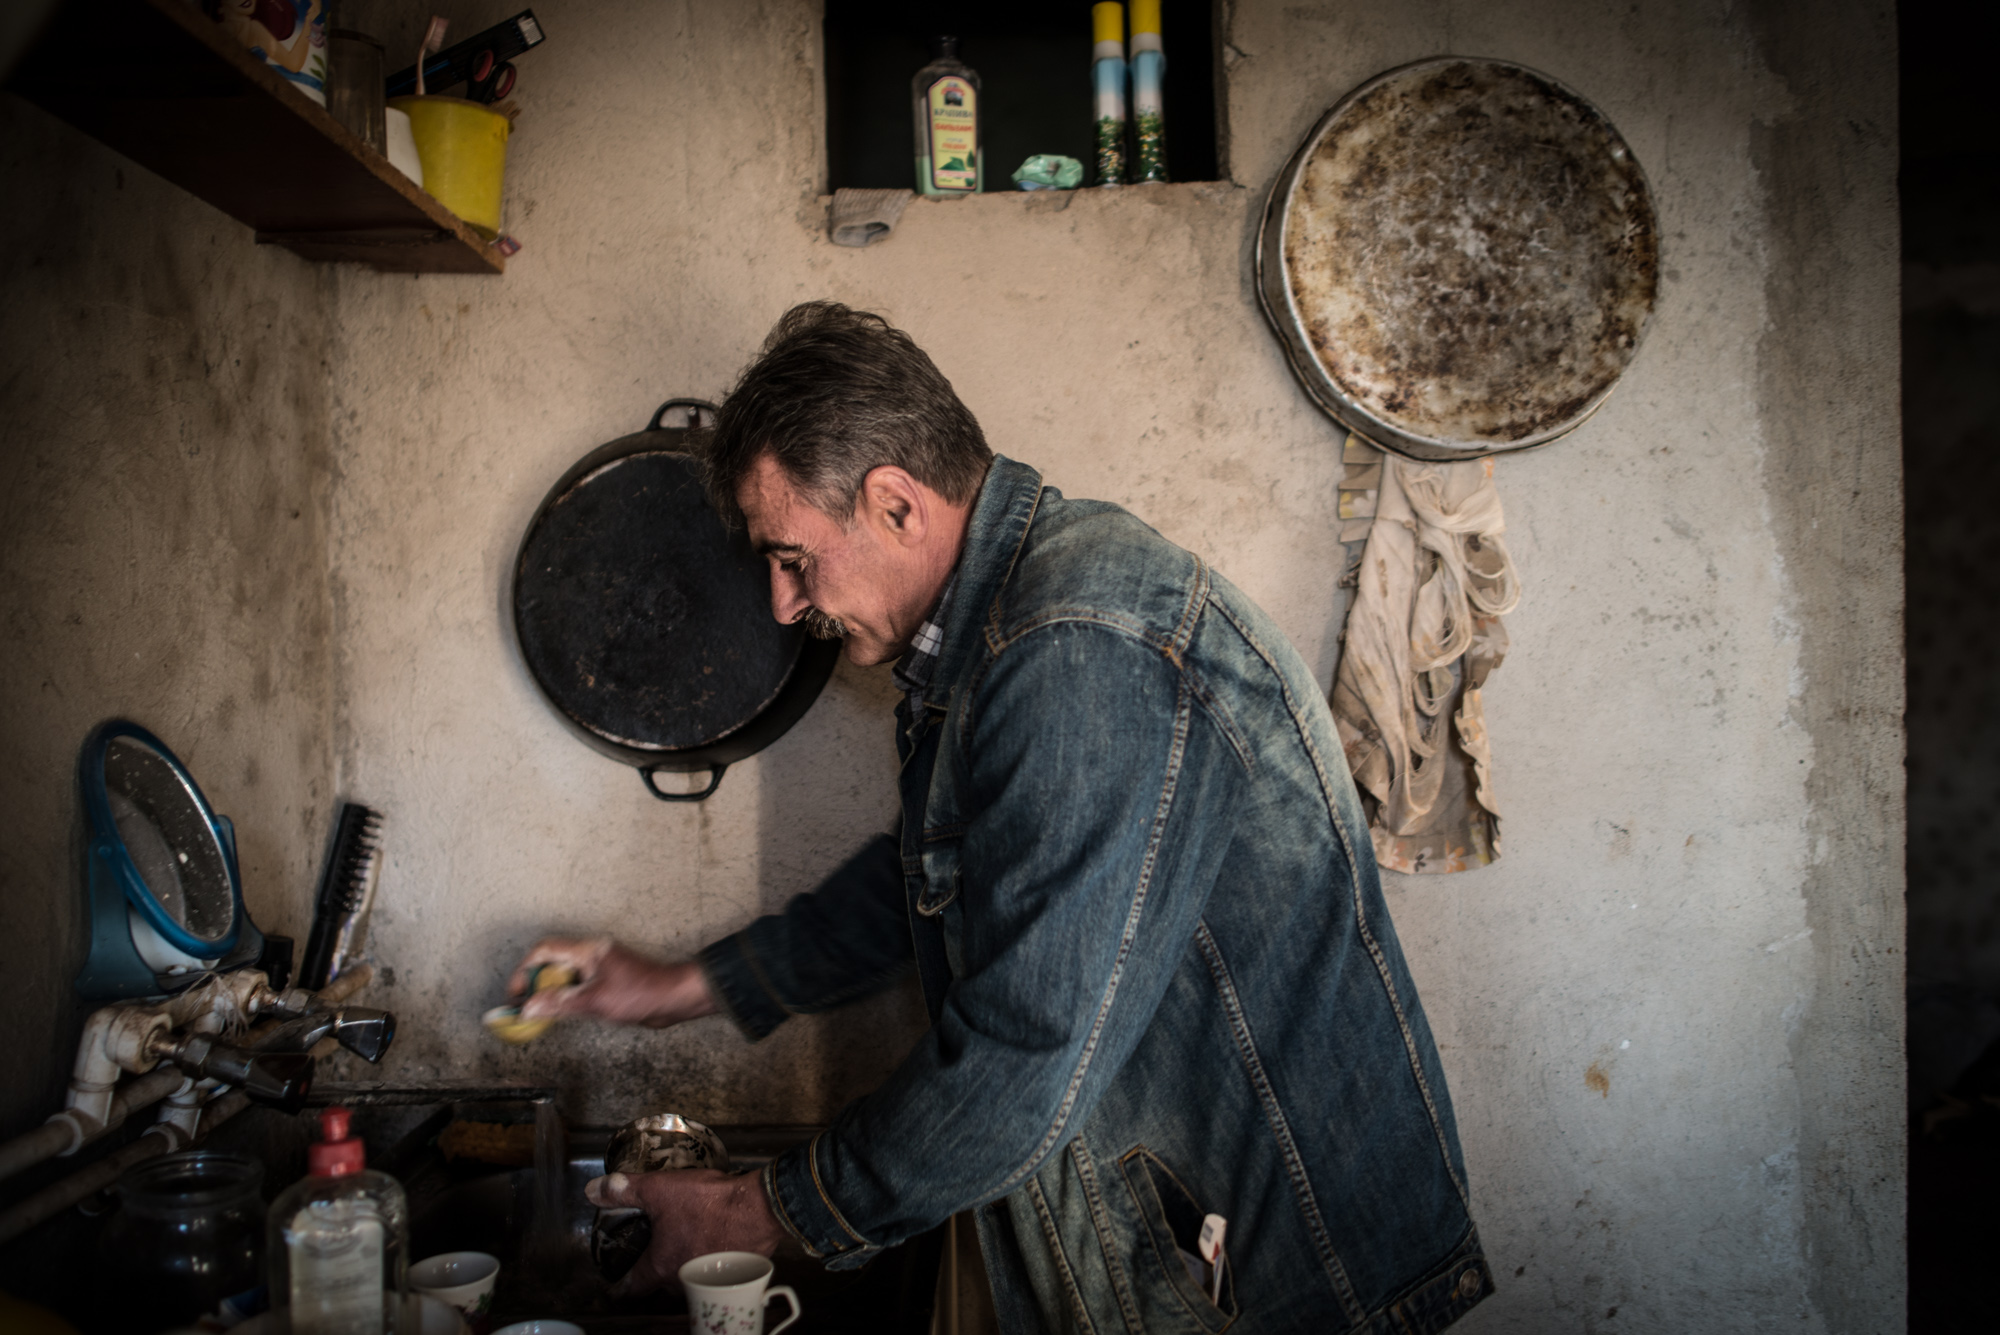 Syrian Armenian Hrach Donabedian lives in Zangilan. He does odd jobs, along with farming and fishing in the Arax River.